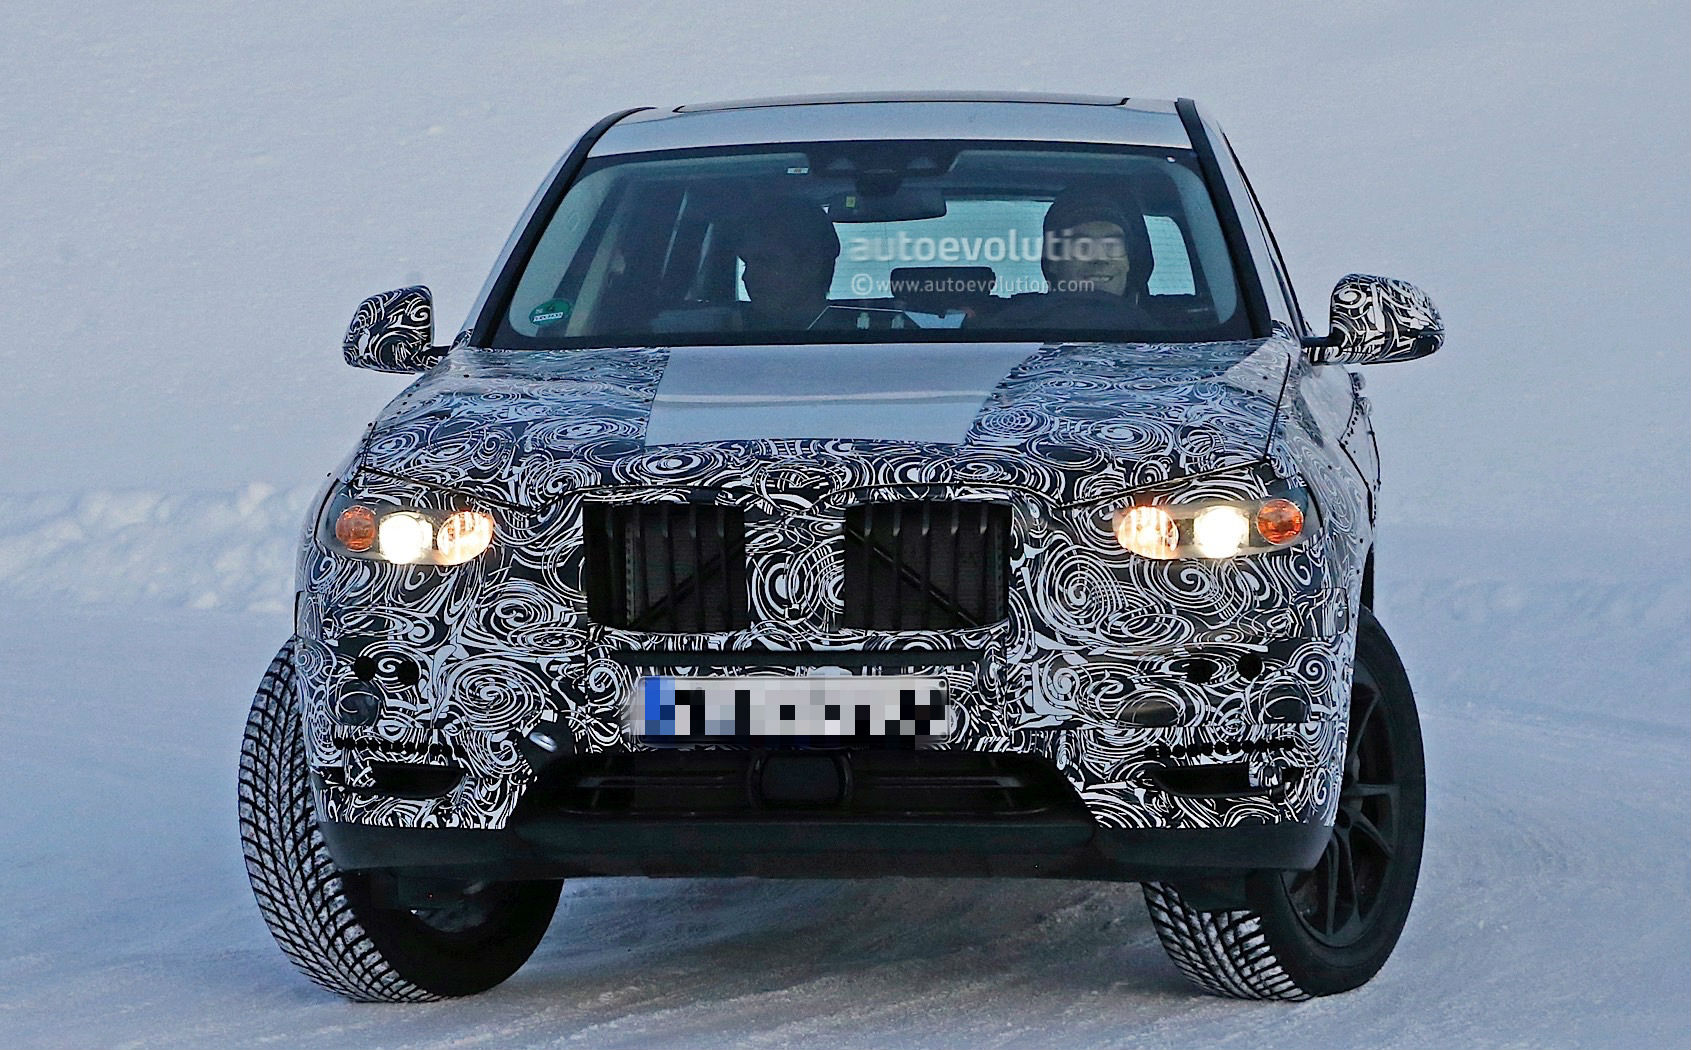 bmw-x3-spy​-shots-rev​eal-a-bigg​er-body-fo​r-the-germ​an-suv-pho​to-gallery​_3